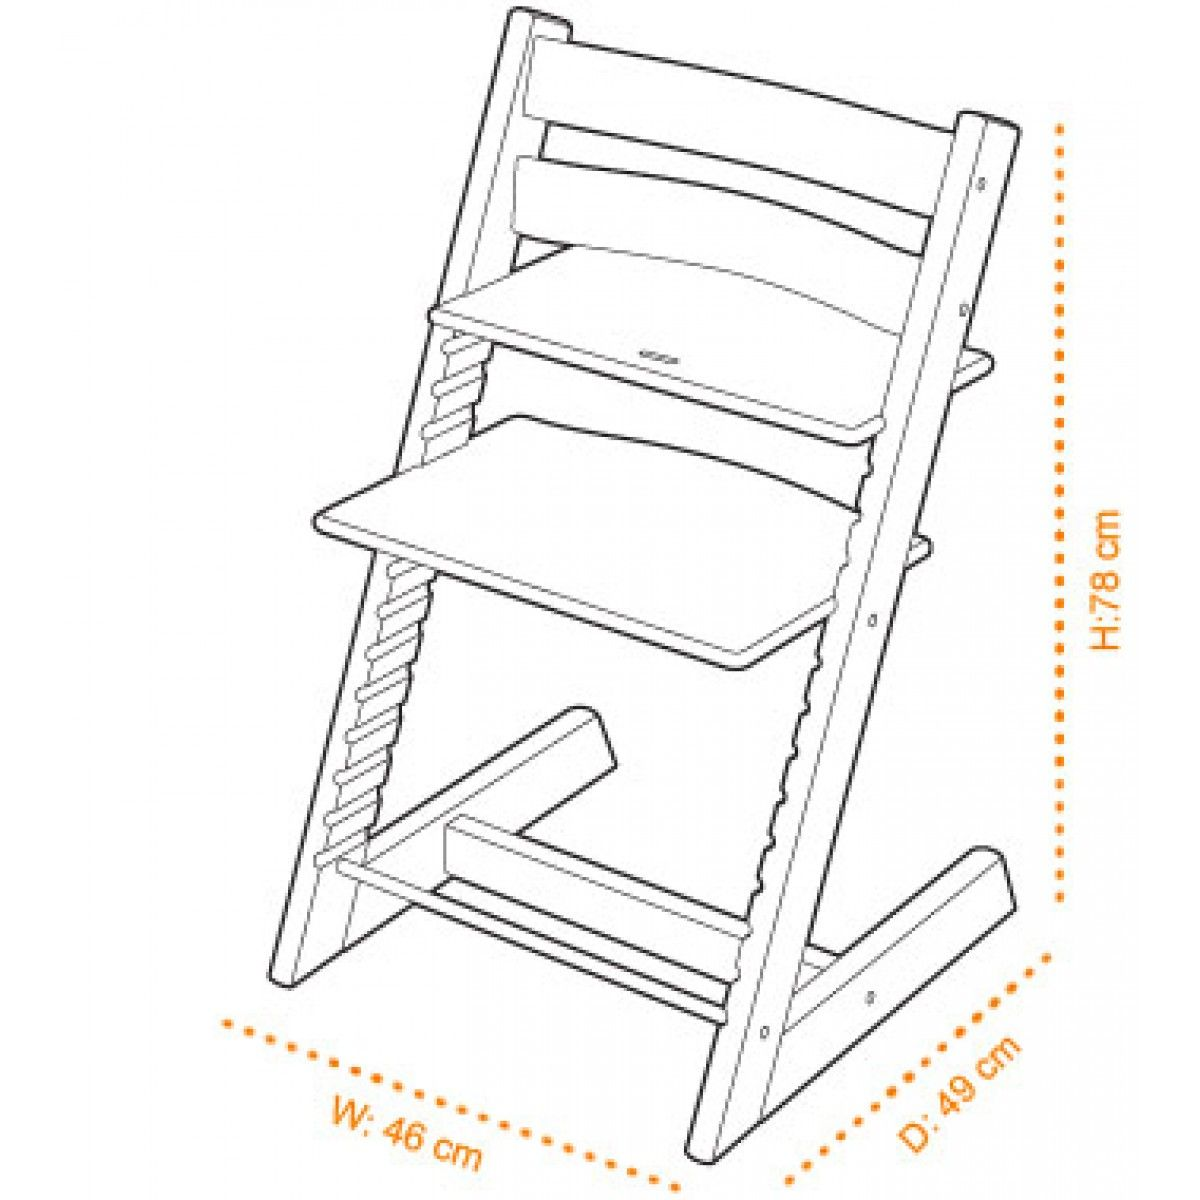 Stokke Tripp Trapp High Chair Baby Enroute